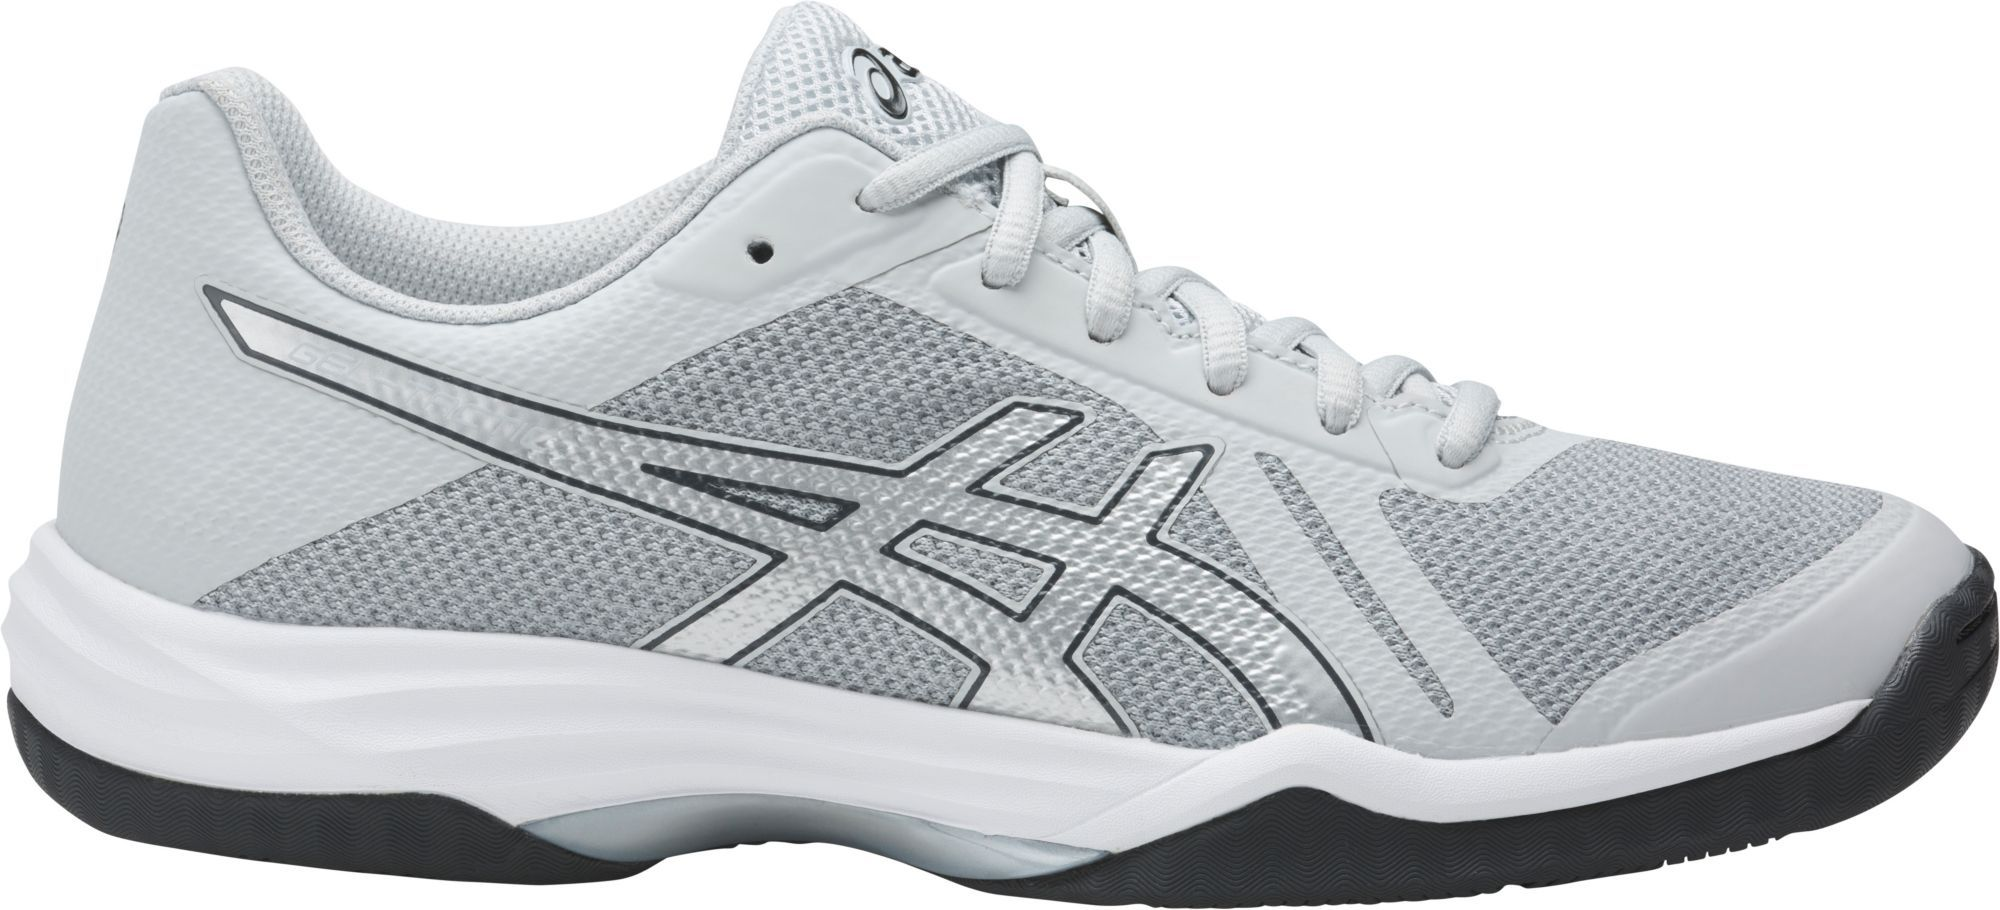 Asics Women S Gel Tactic 2 Volleyball Shoes Volleyball Shoes Asics Women Asics